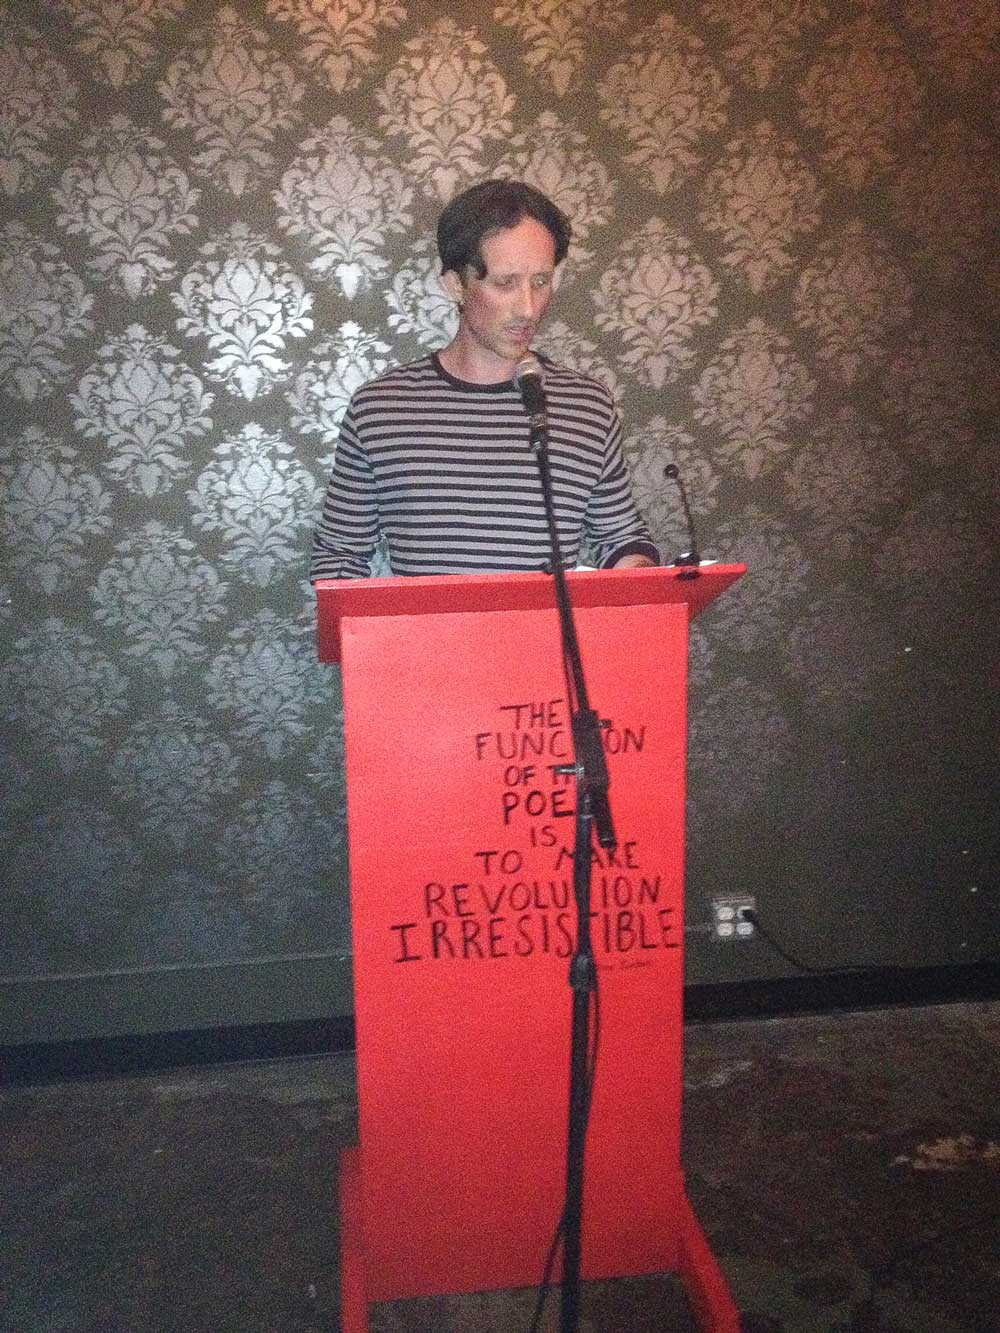 big-yes-press-poet-reading-podium.jpg